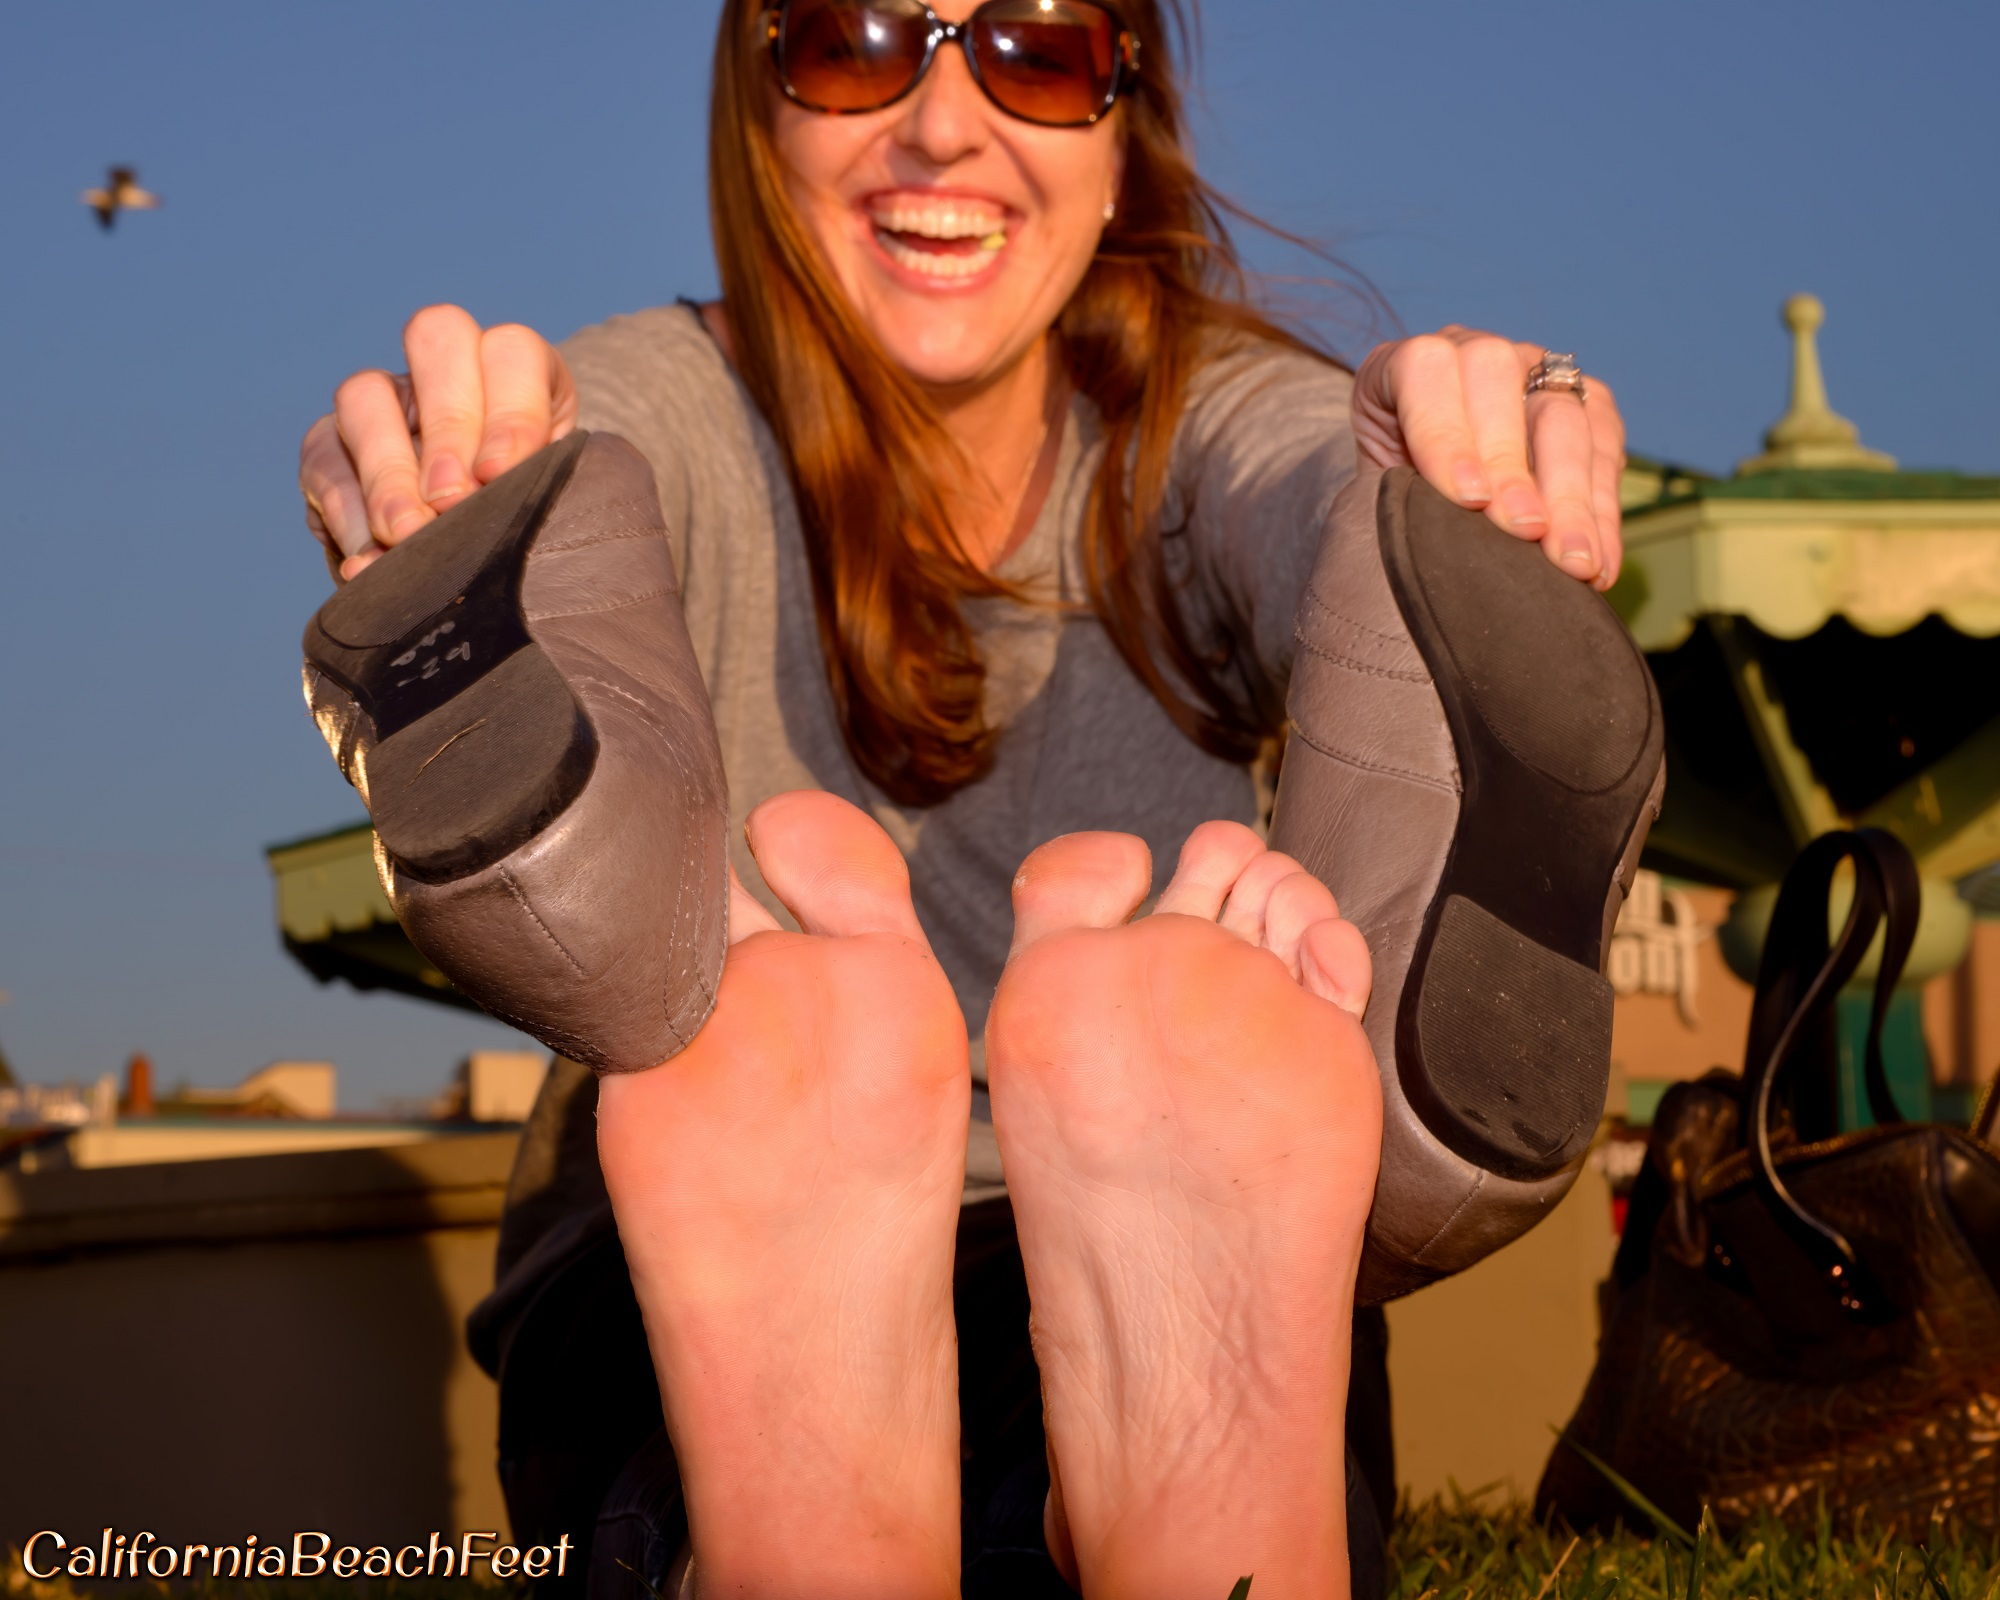 Send Comments To Webmastercaliforniabeachfeet Com See More Photos At California Beach Feet By Clicking The Banner Below